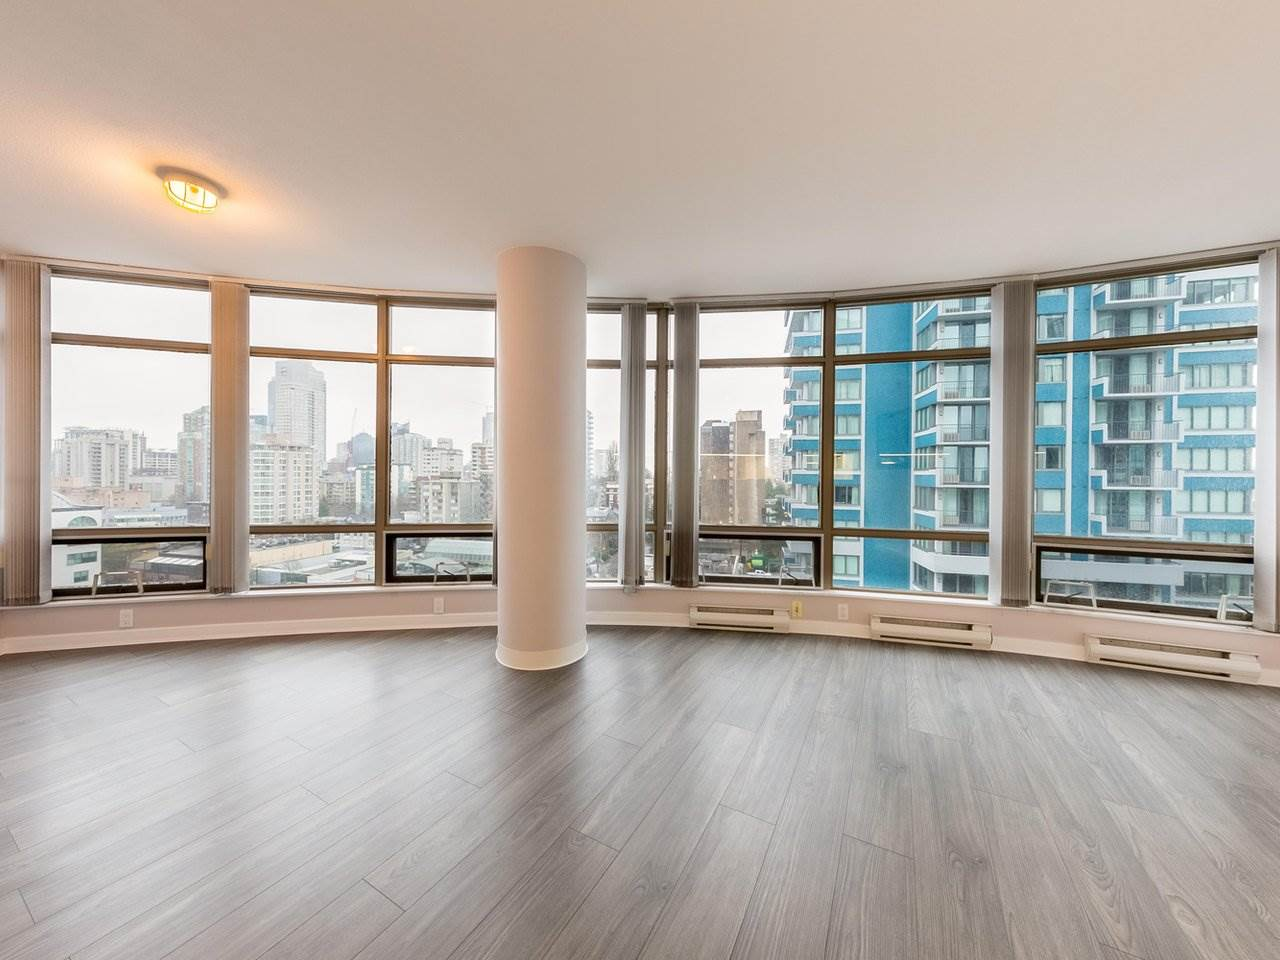 1202 1200 ALBERNI STREET - West End VW Apartment/Condo for sale, 2 Bedrooms (R2527140) - #1